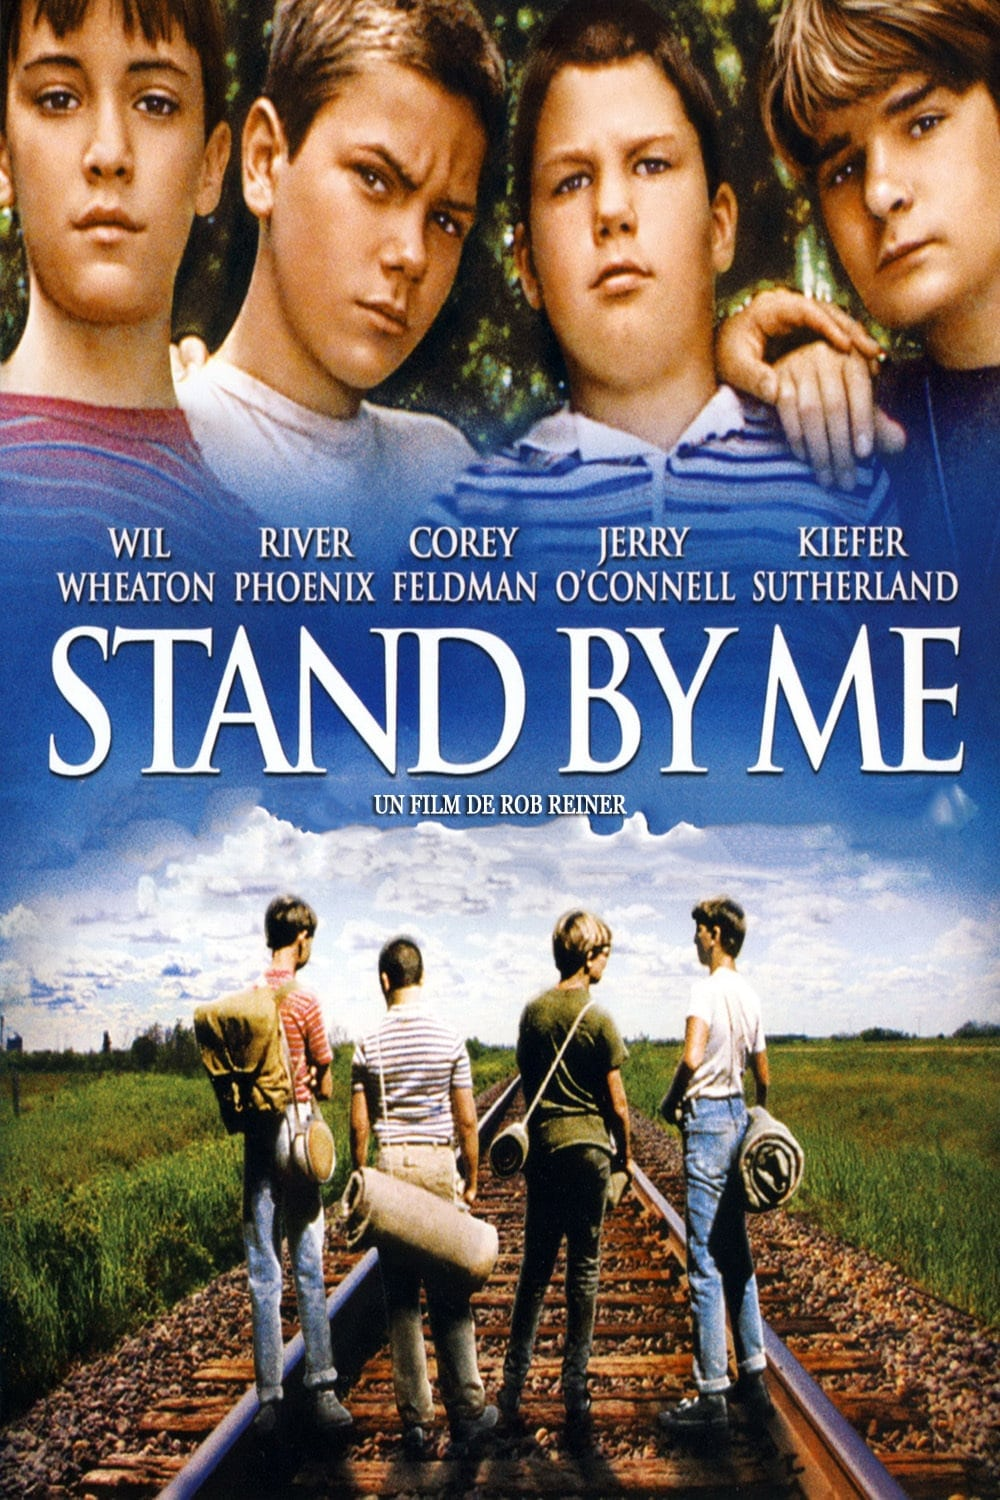 Stand by me film streaming vf. La datation.